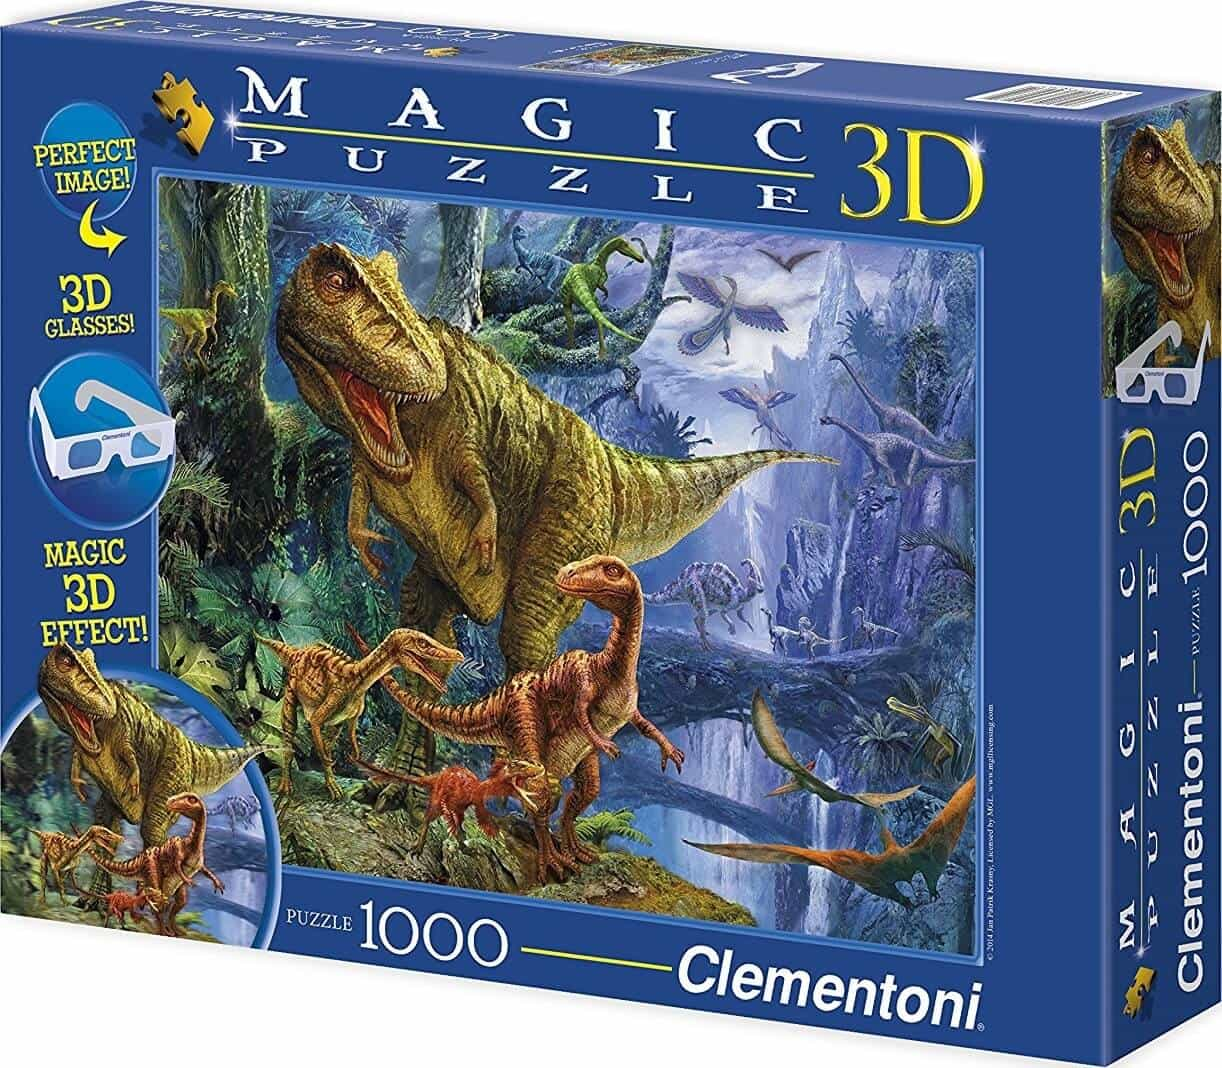 1000 Dinosaurios MAGIC 3D